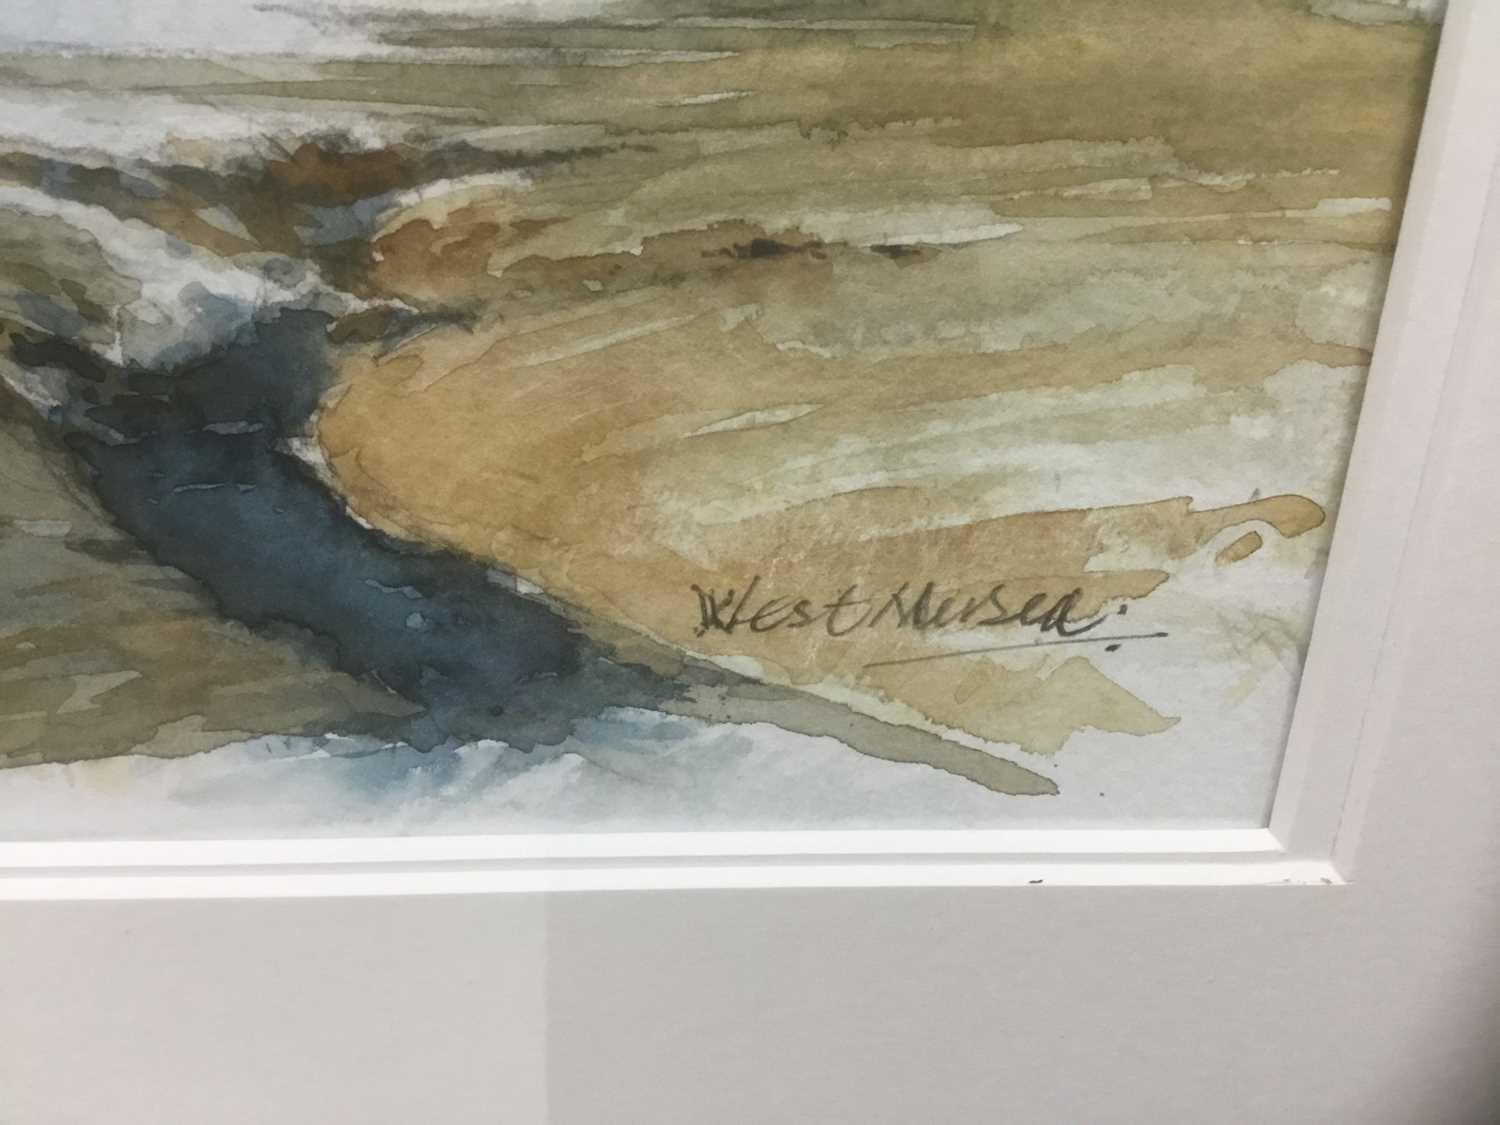 Edwin Meayers (b.1927) watercolour - West Mersea, signed, inscribed and dated '07, 42cm x 67cm, in g - Image 2 of 8